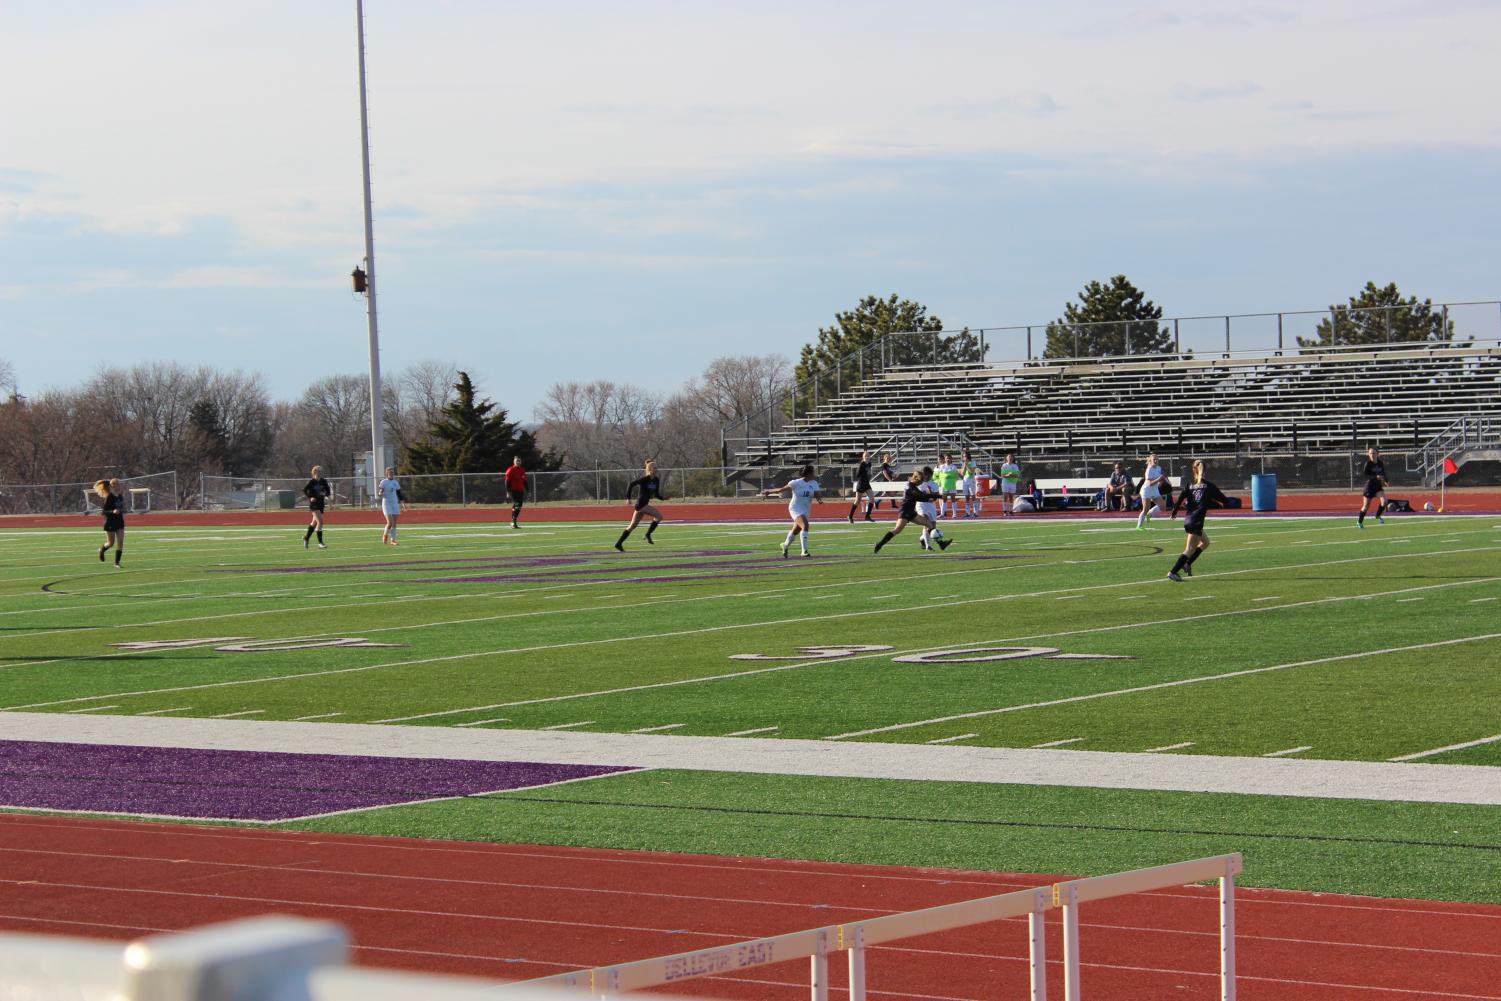 Sophomore Sami Redding heads down the field to attempt to score. Photo by Sharon Guchu